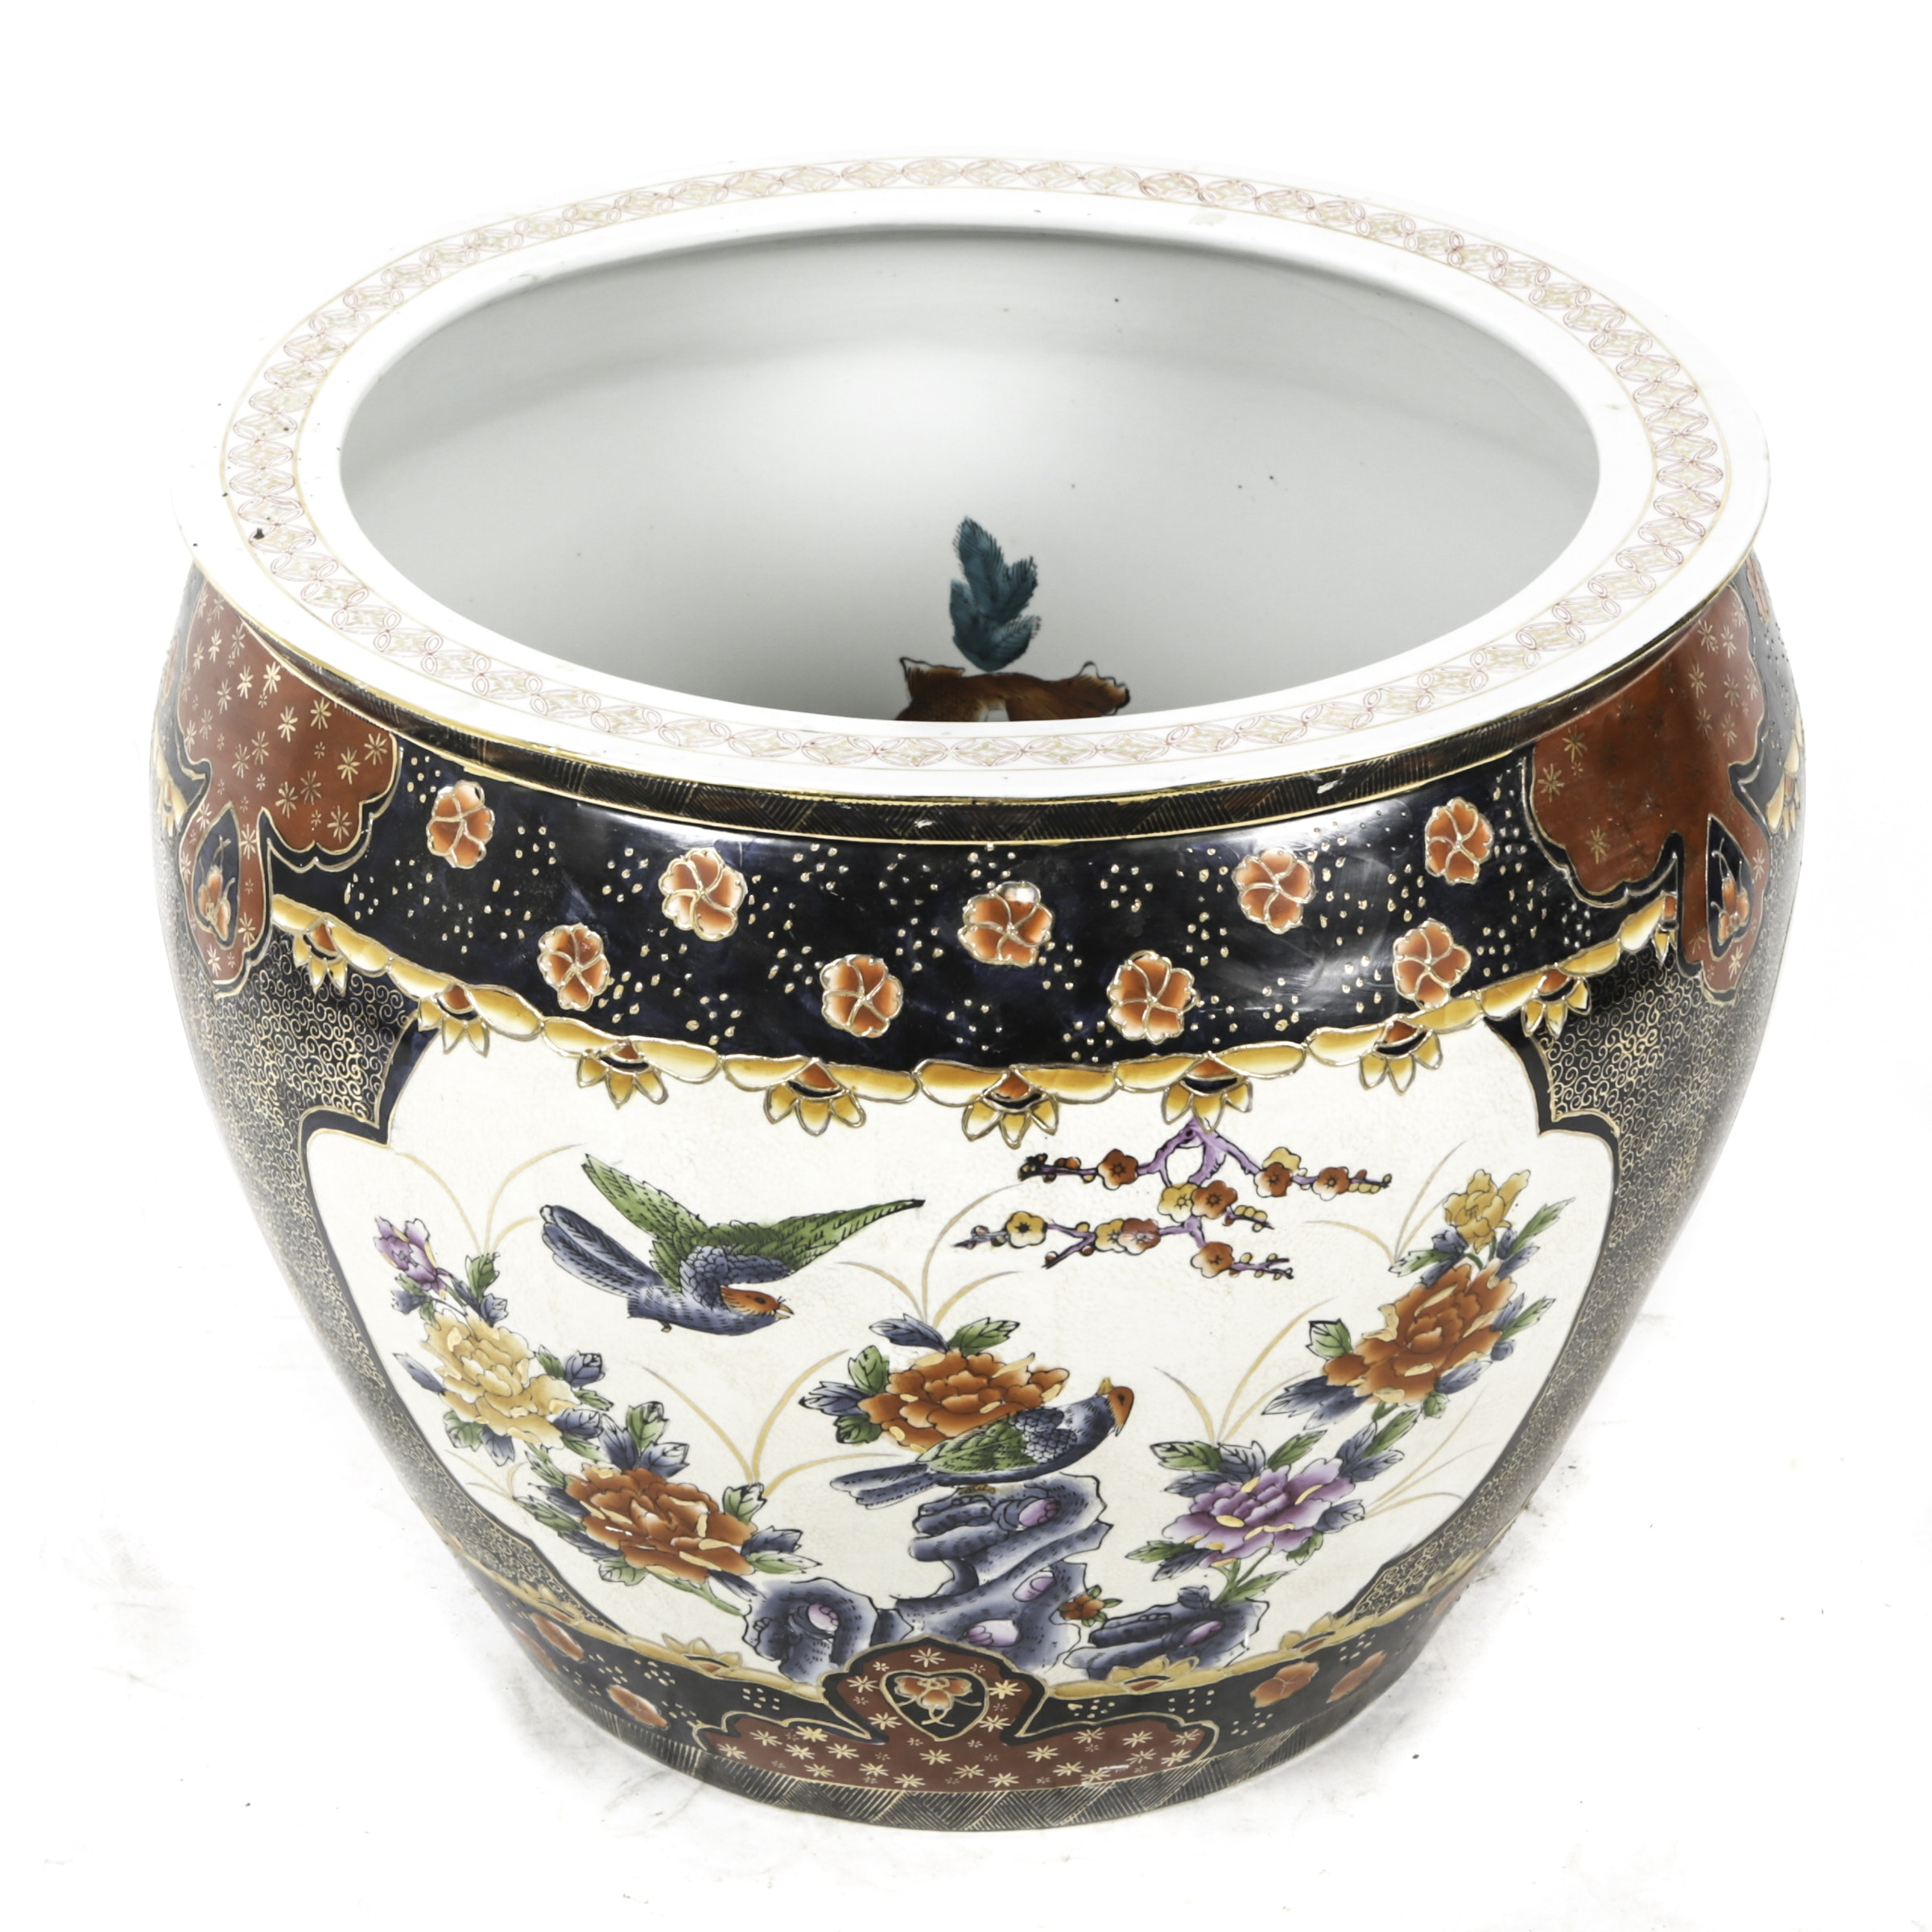 Chinese Hand-Painted Porcelain Koi Fish Bowl Planter